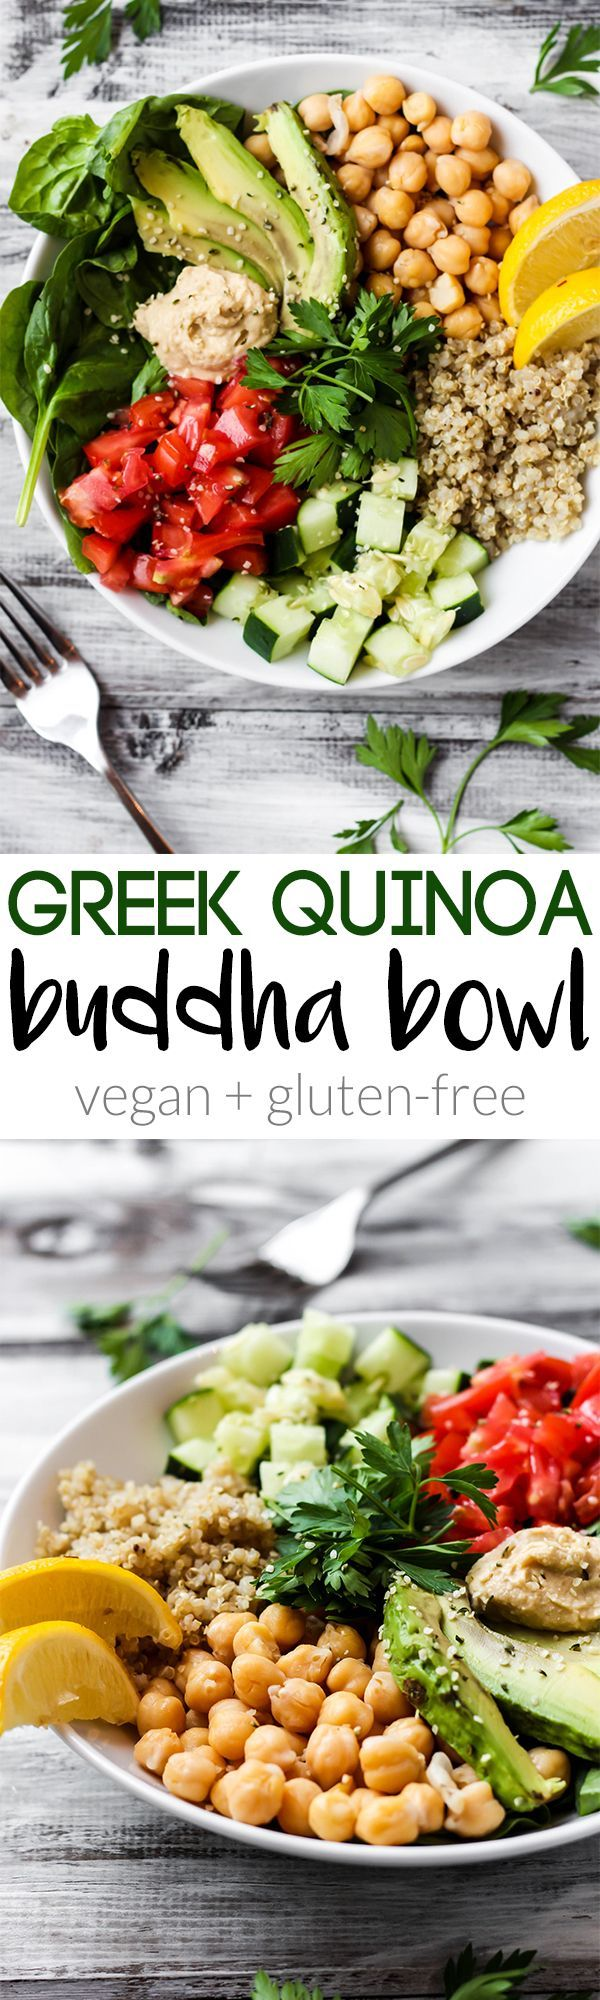 Full of greens and beans, this Greek Quinoa Buddha Bowl is the ultimate healthy lunch or dinner. Its ready in 20 minutes and